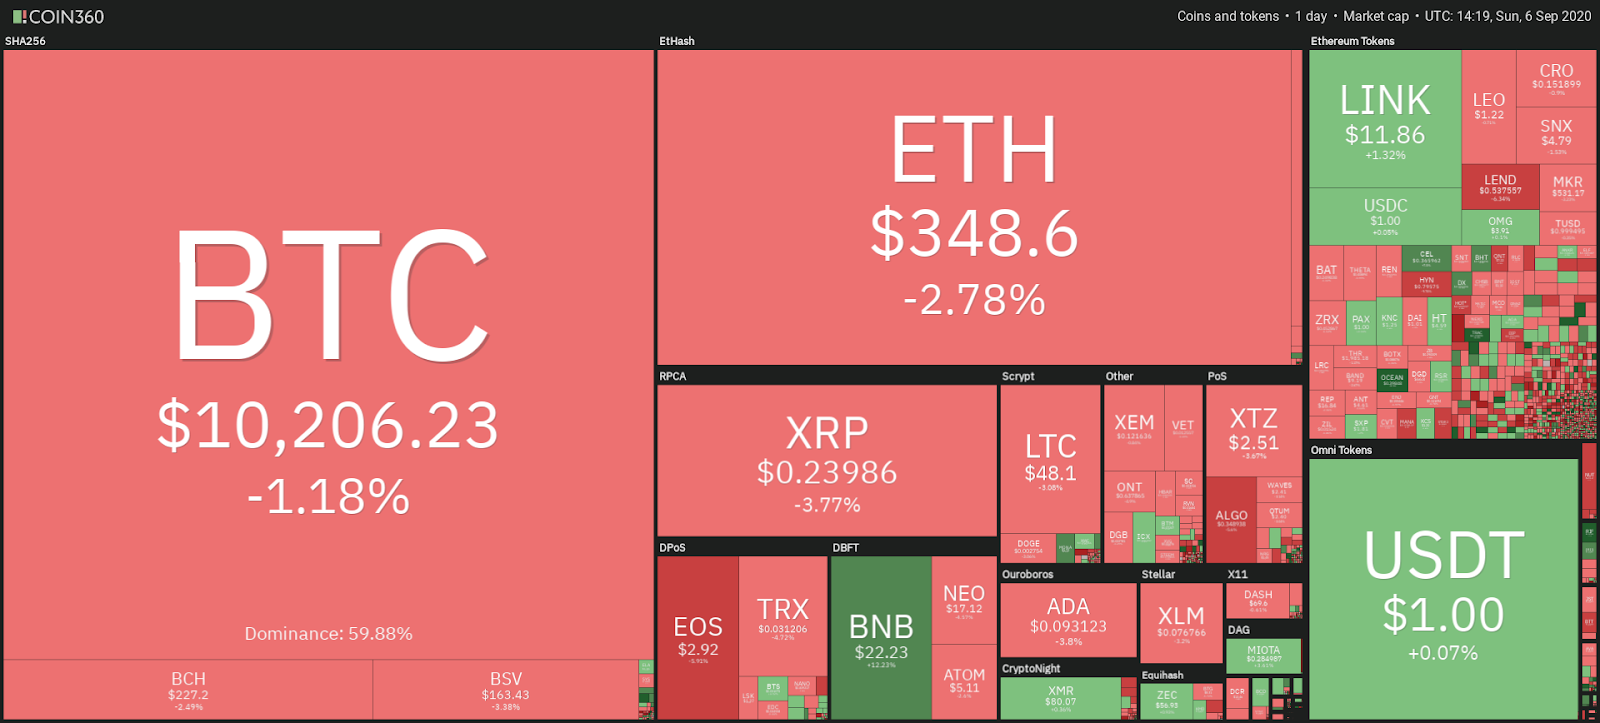 Daily cryptocurrency market snapshot, Sep. 4. Source: Coin360.com